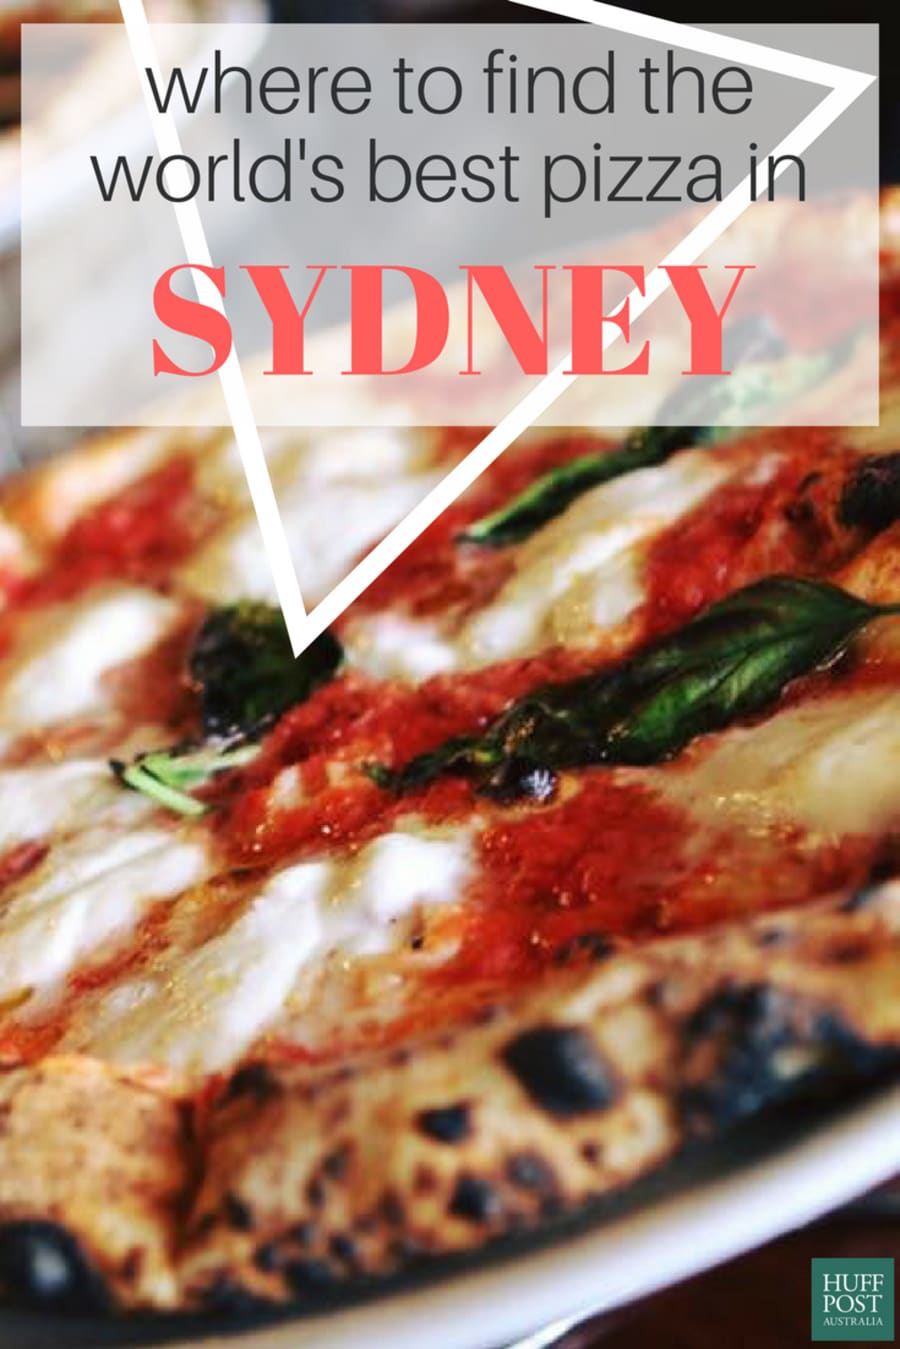 One Of The World's Best Pizzerias Is Found In